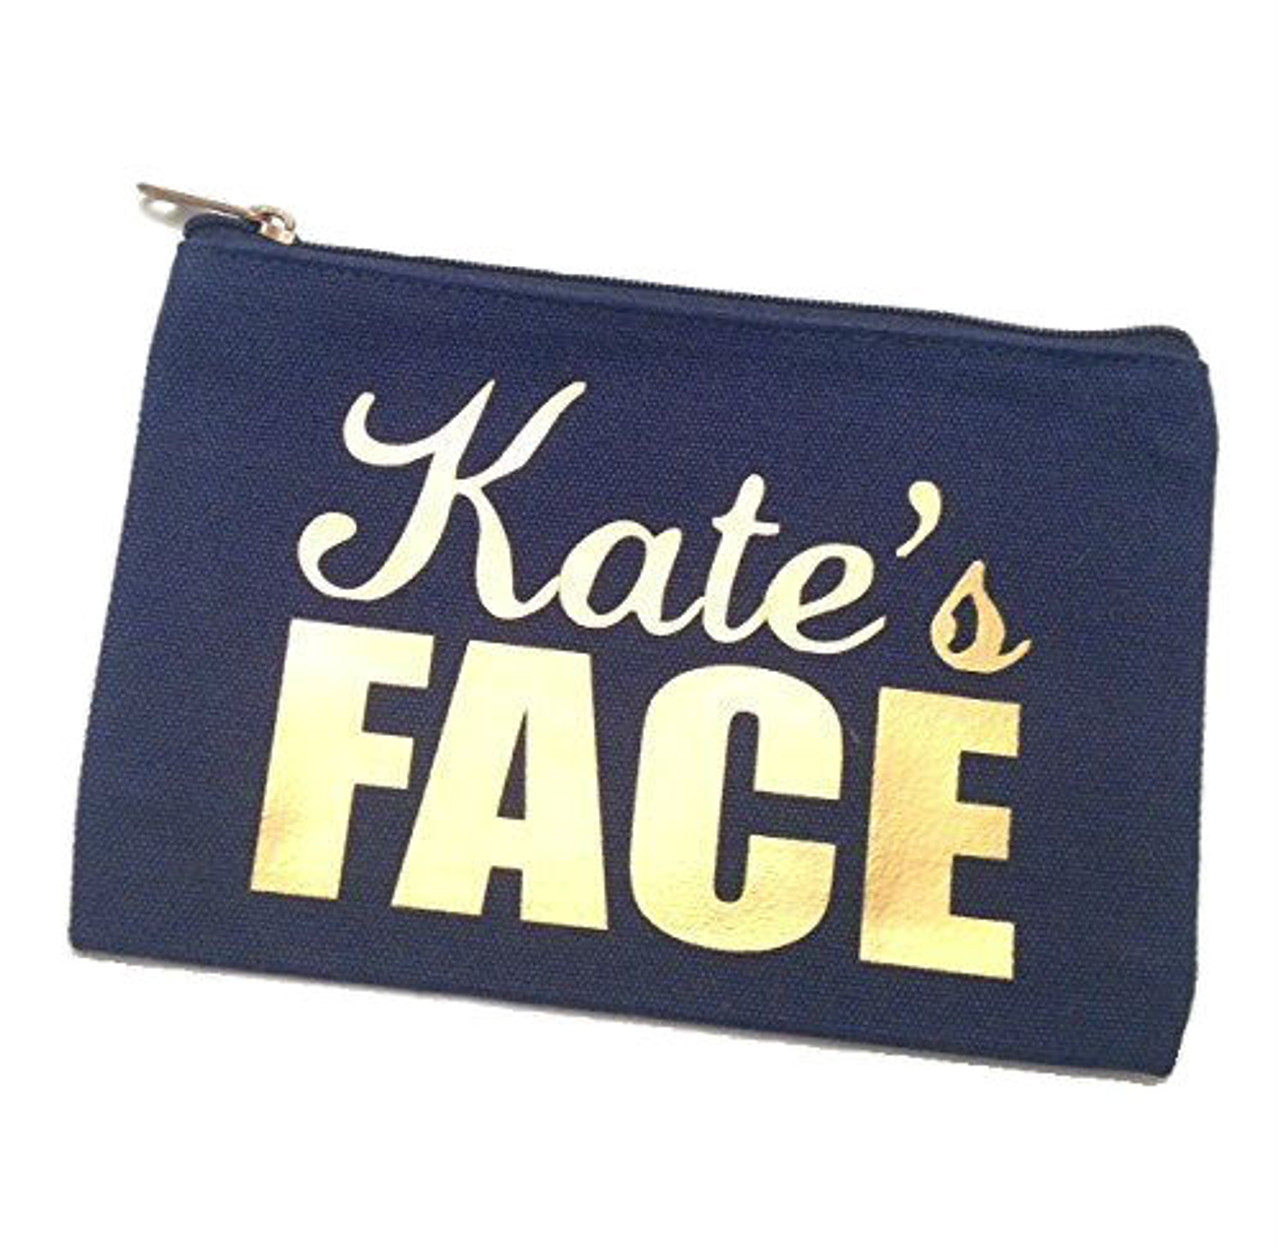 Face It Personalized Makeup Bag In Navy